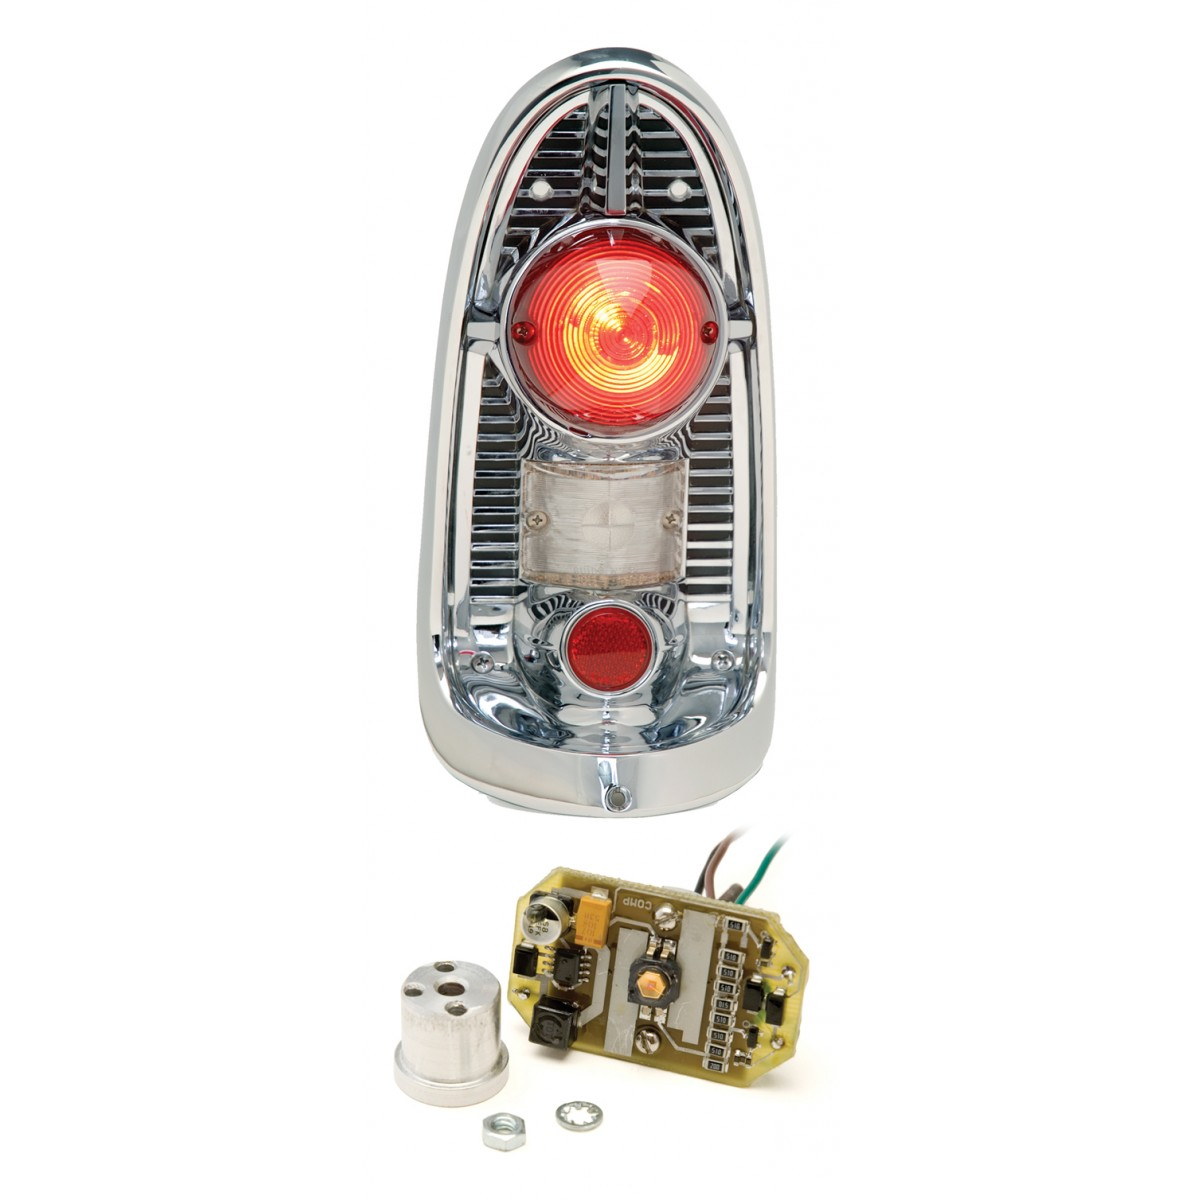 hight resolution of 1956 chevy led tail lights dakota digital lat nr2001956 chevy bel air tail lights wiring